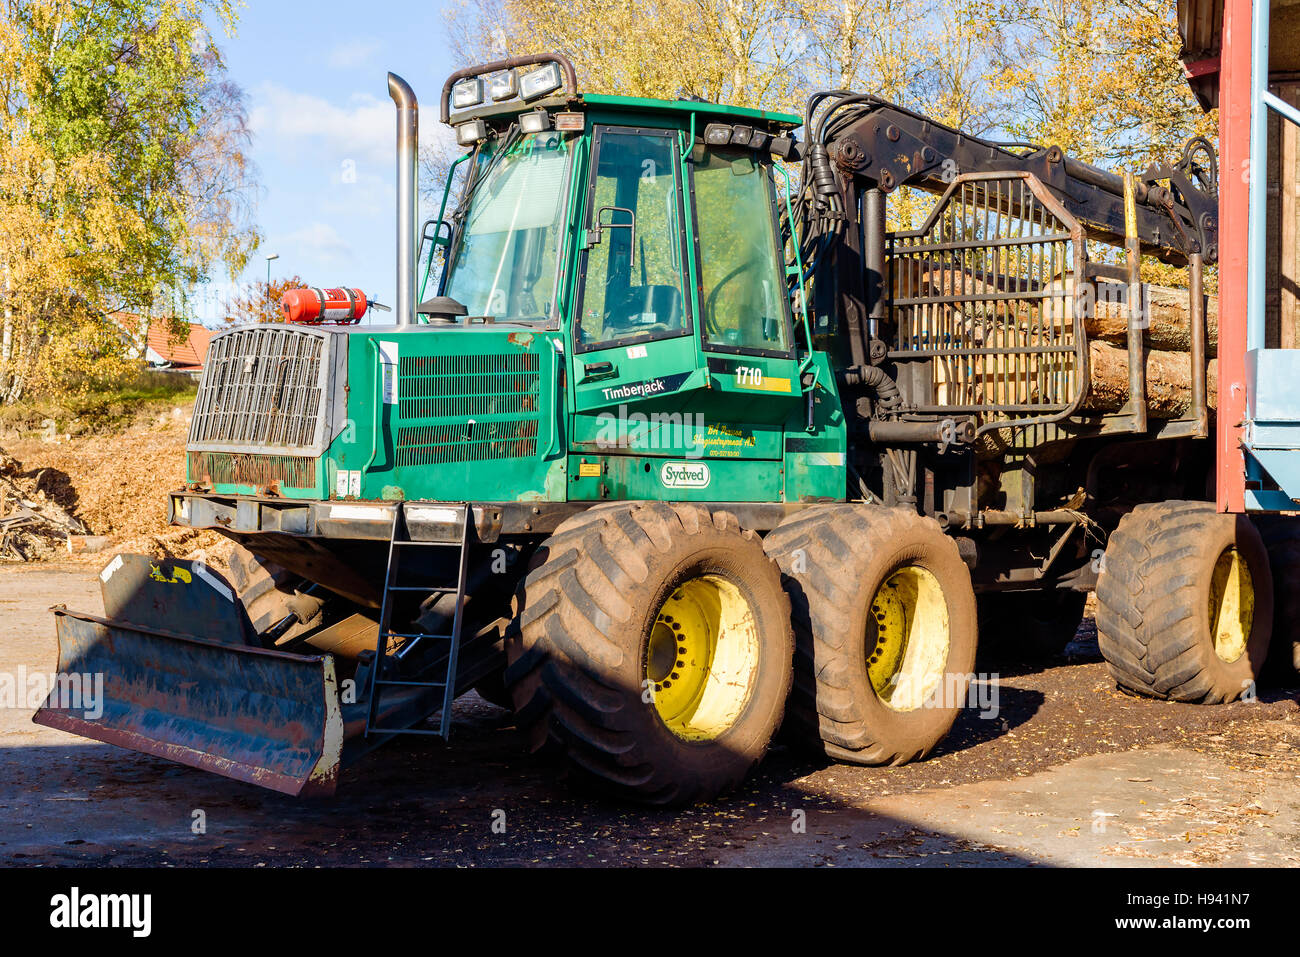 Brakne Hoby, Sweden - October 29, 2016: Documentary of public access industrial area. Timberjack 1710 forwarder Stock Photo